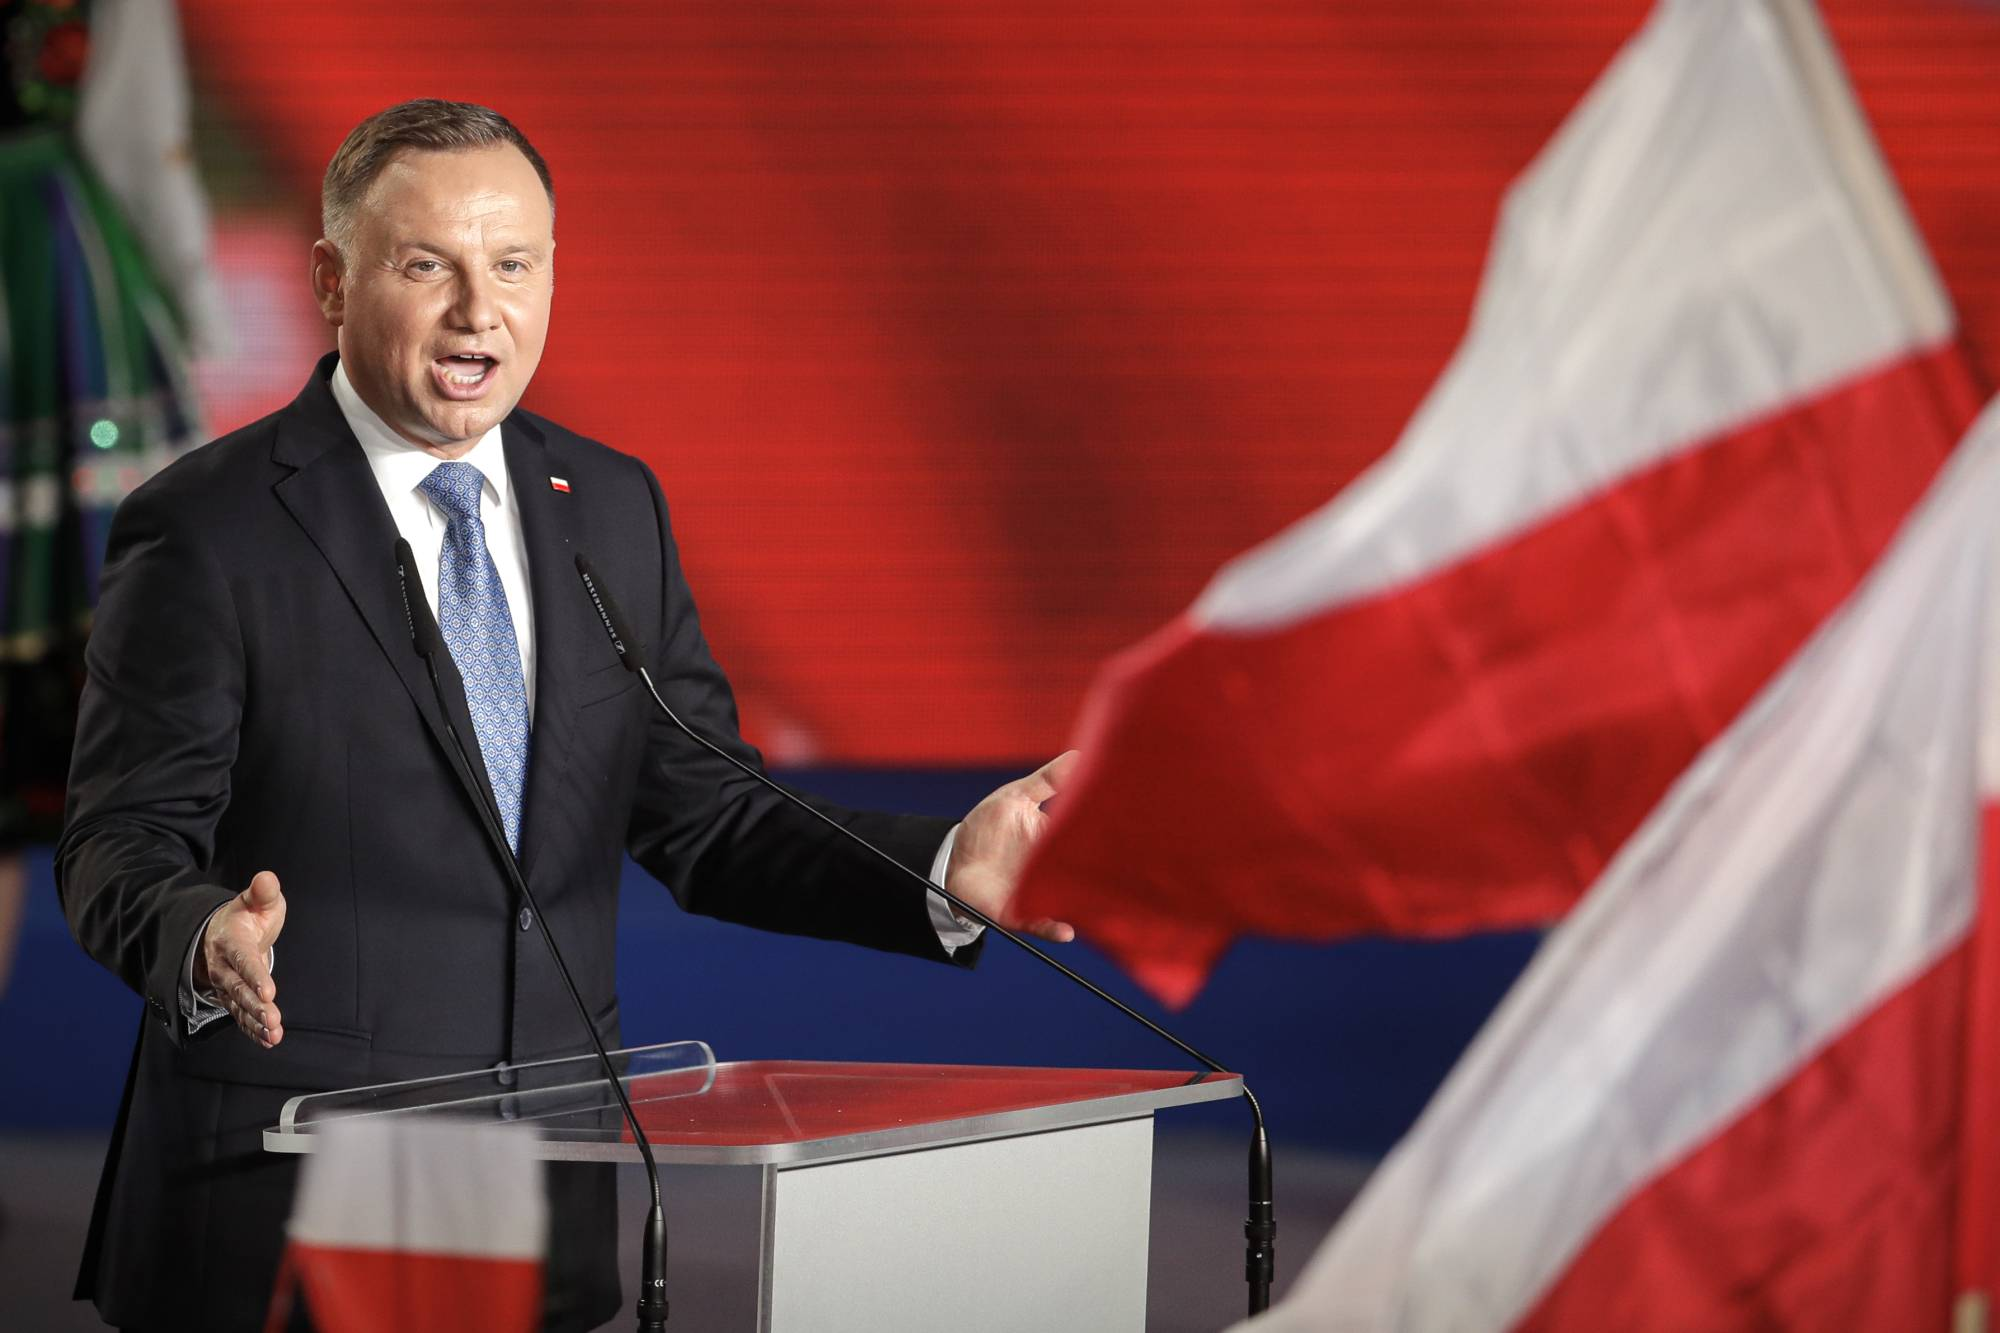 President Andrzej Duda addressees supporters after voting ended in the presidential election in Lowicz, Poland, on Sunday. | AP